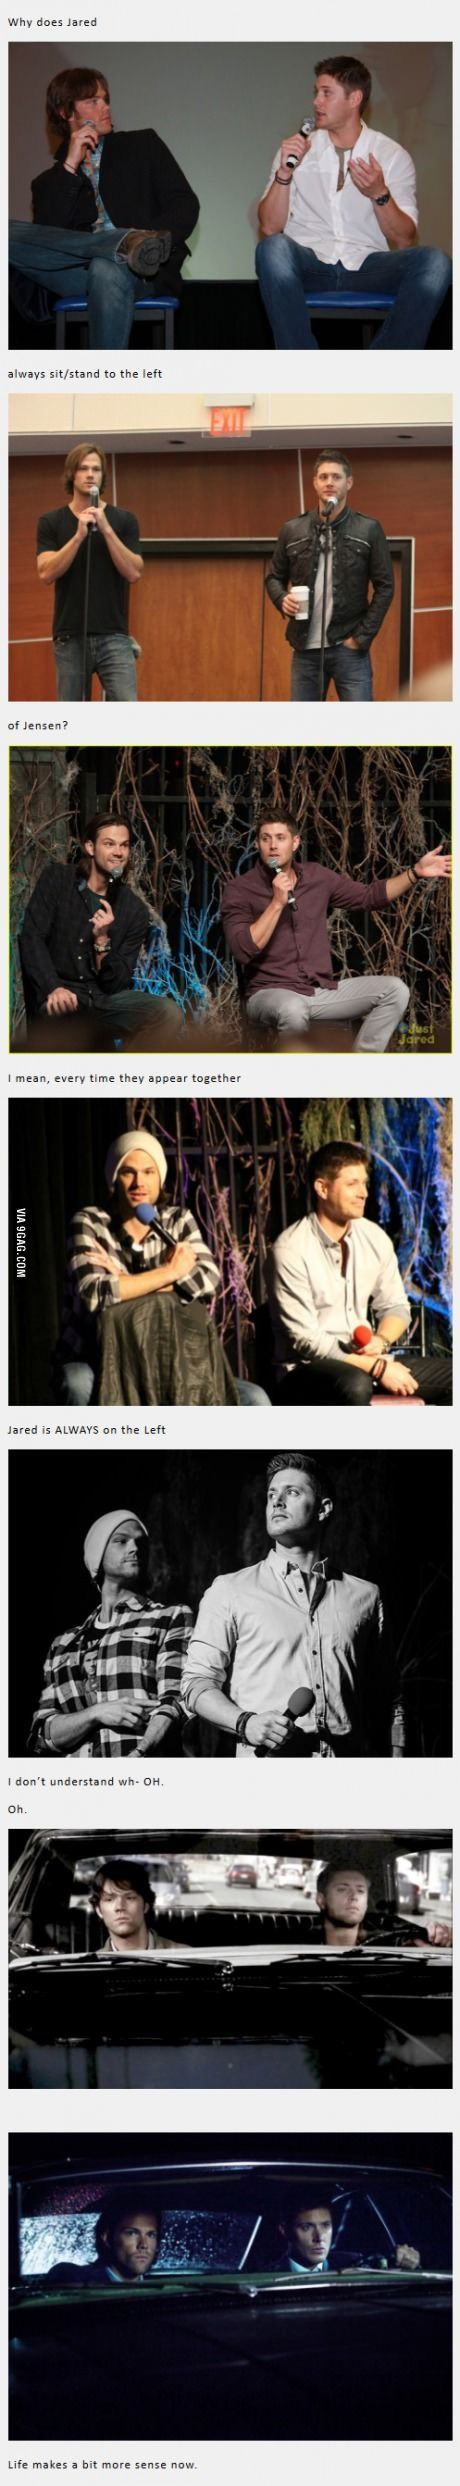 He's actually on Jensen's right, but yeah...